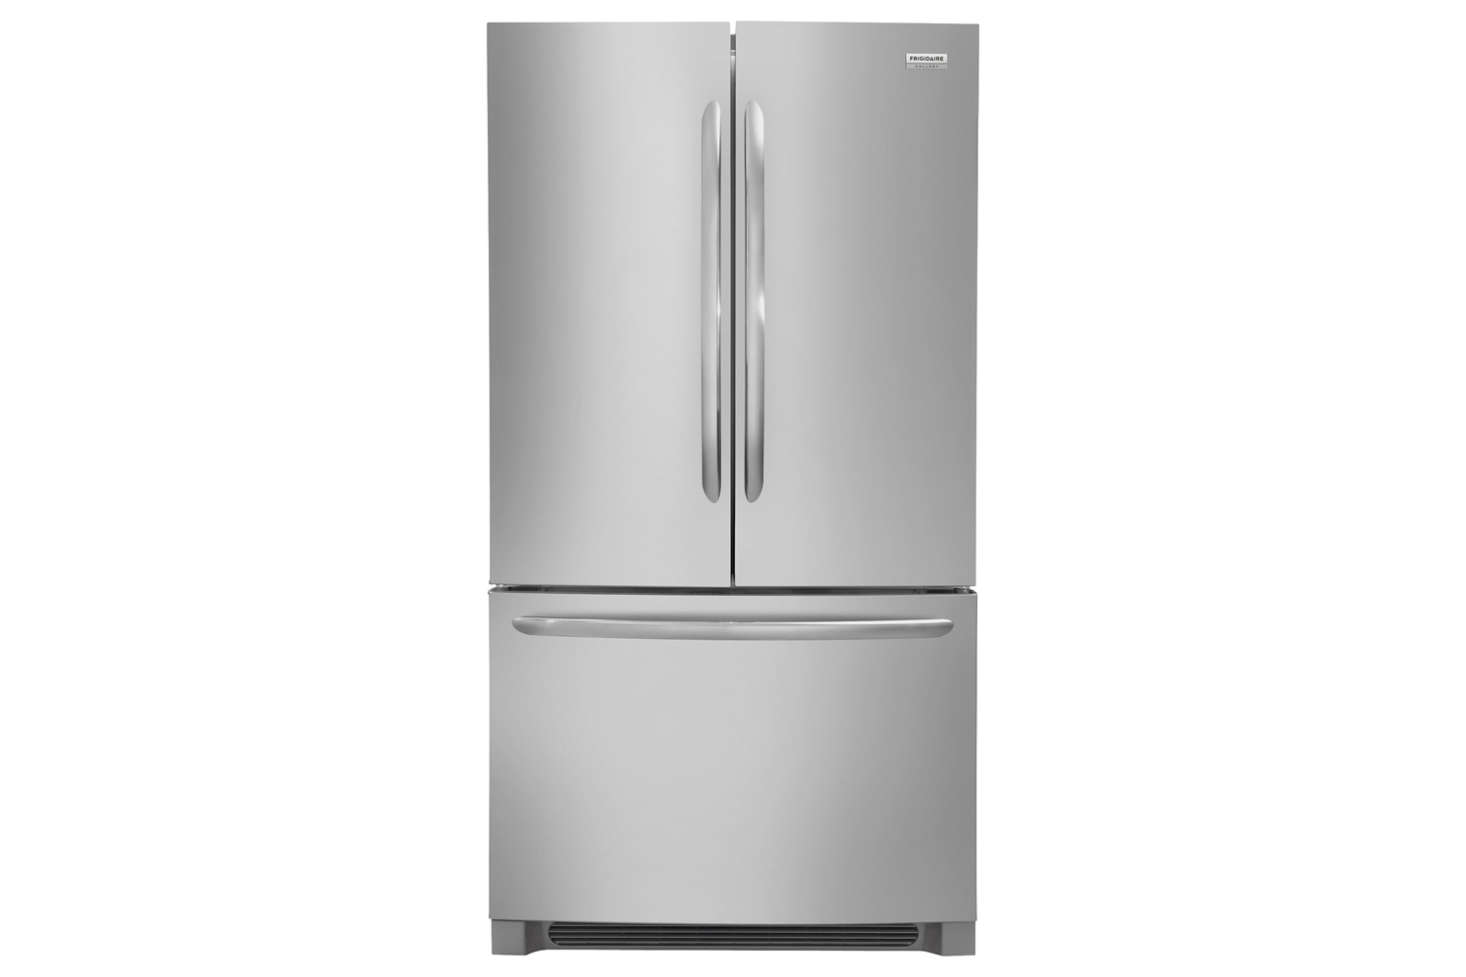 The Frigidaire Gallery 36-Inch Counter-Depth French Door Refrigerator (FGHG2368TF) is 28 1/2 inches deep; $2,288.10 from AJ Madison.